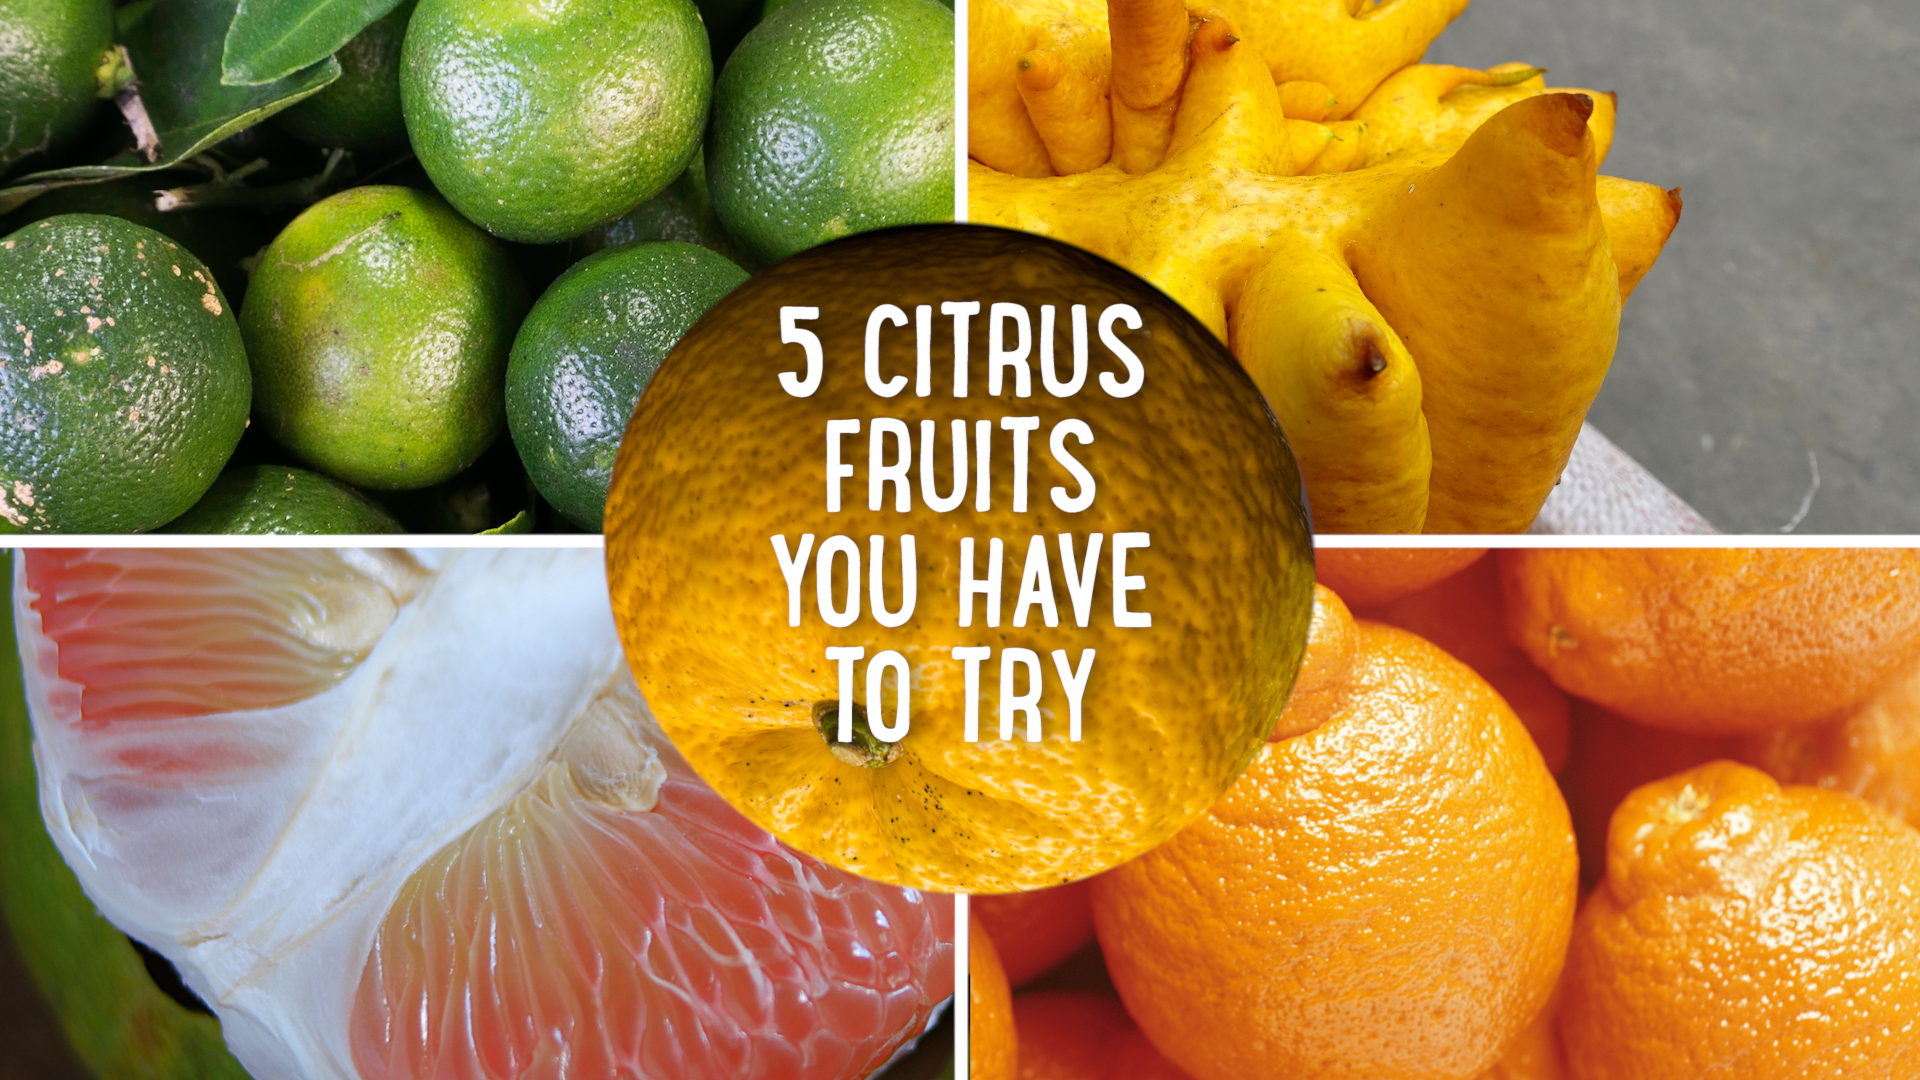 5 Strange Citrus Fruits You Have to Try STILL.jpg